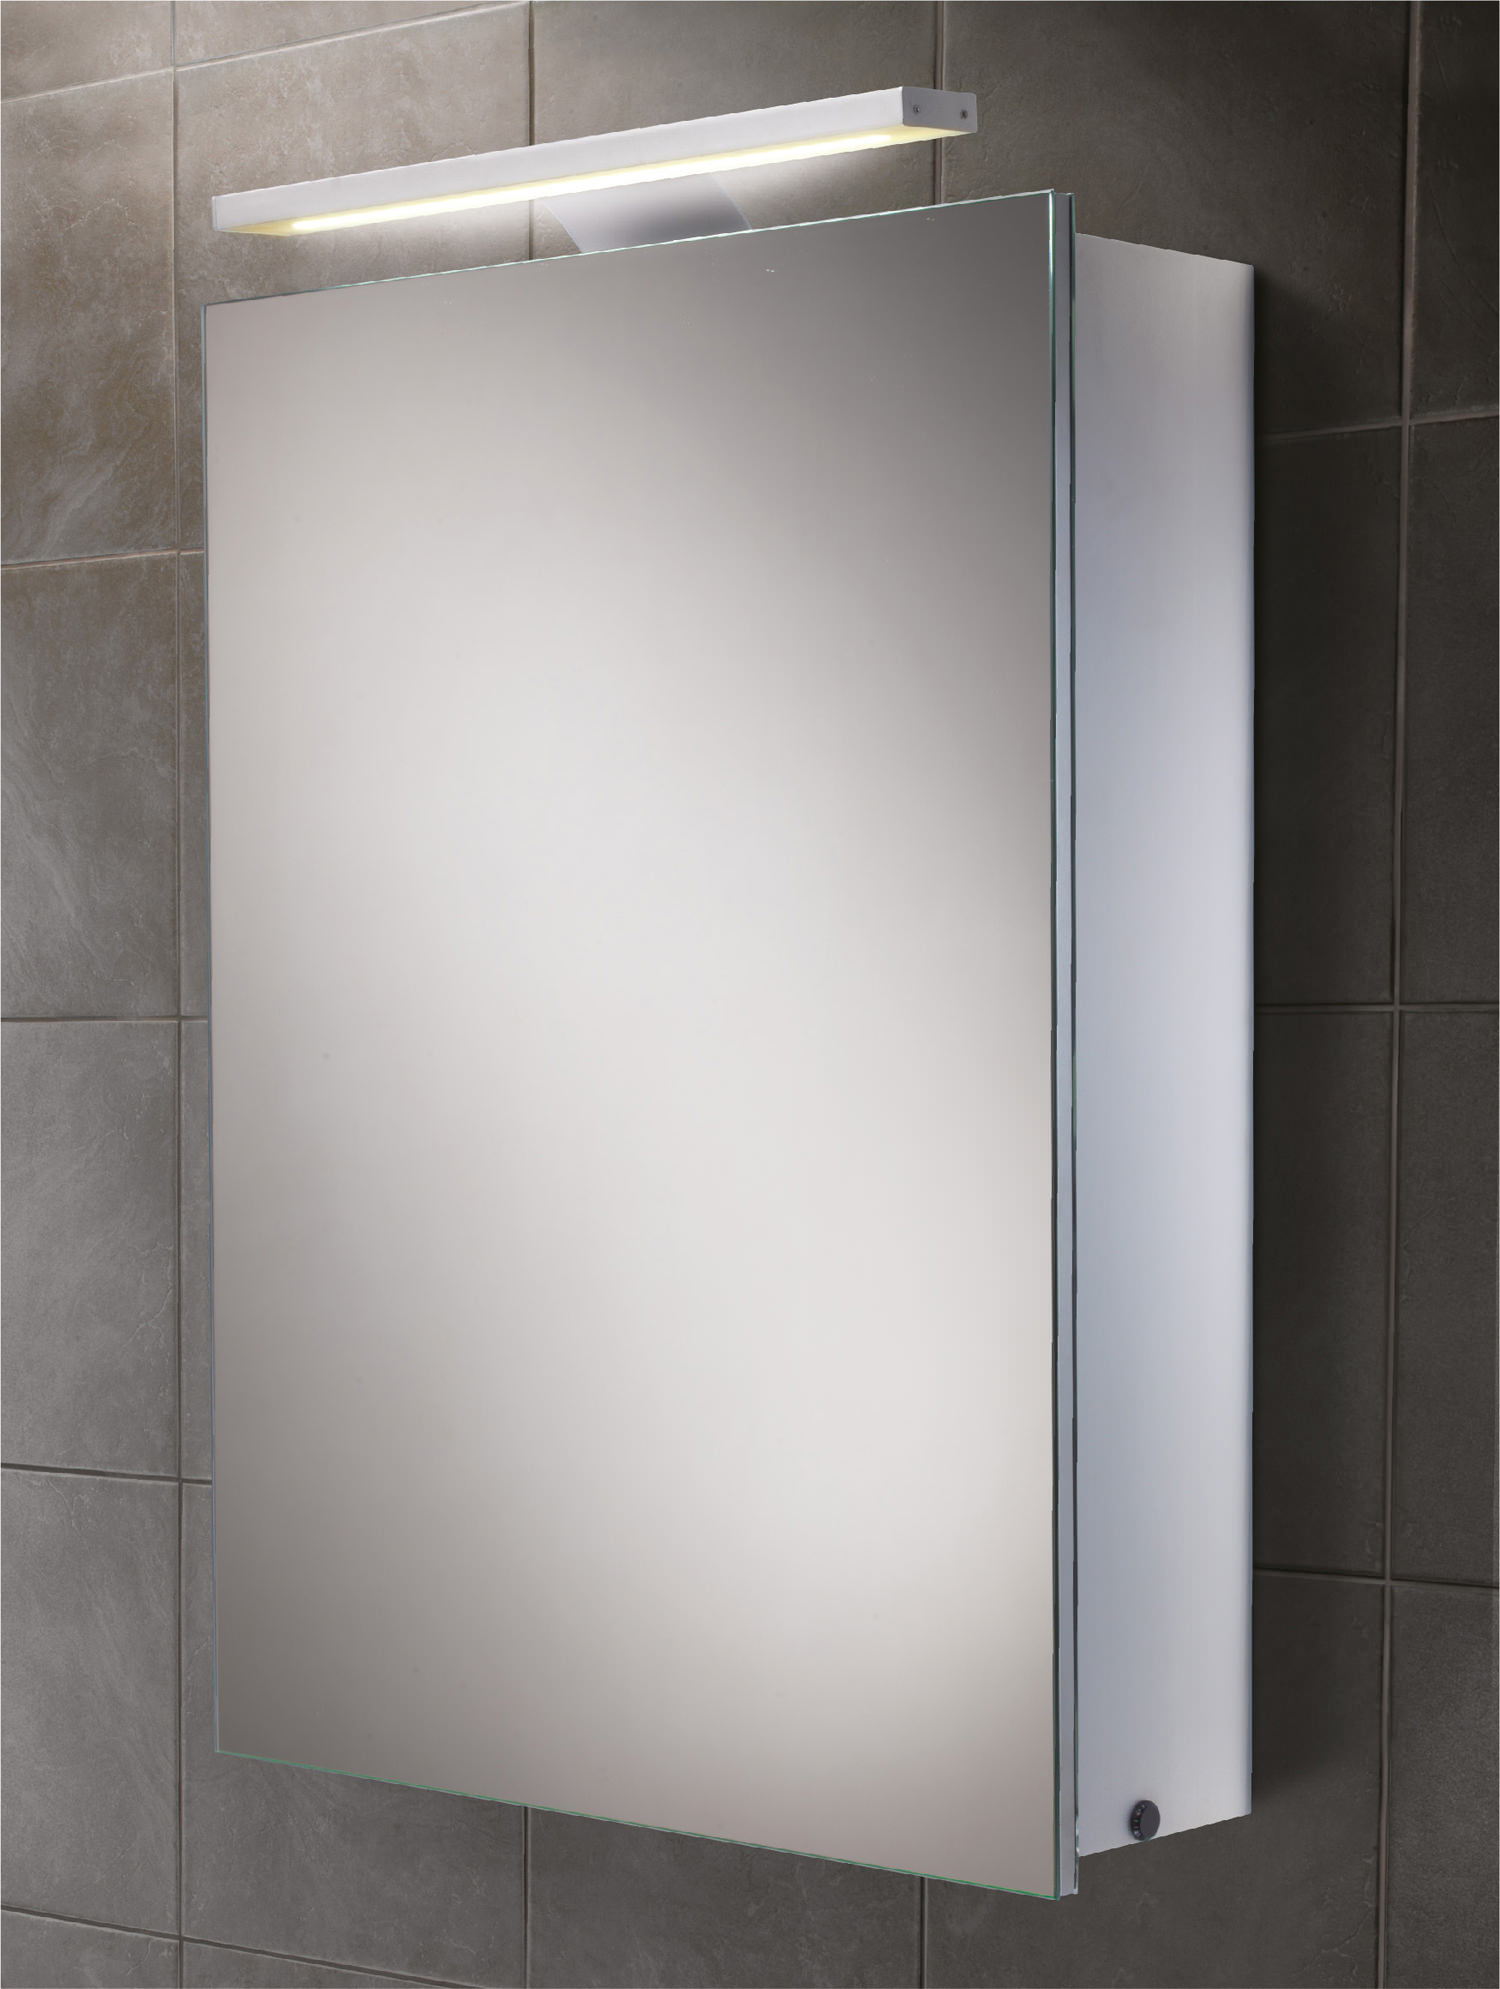 Hib Orbital Steam Free Led Illuminated Aluminium Mirrored